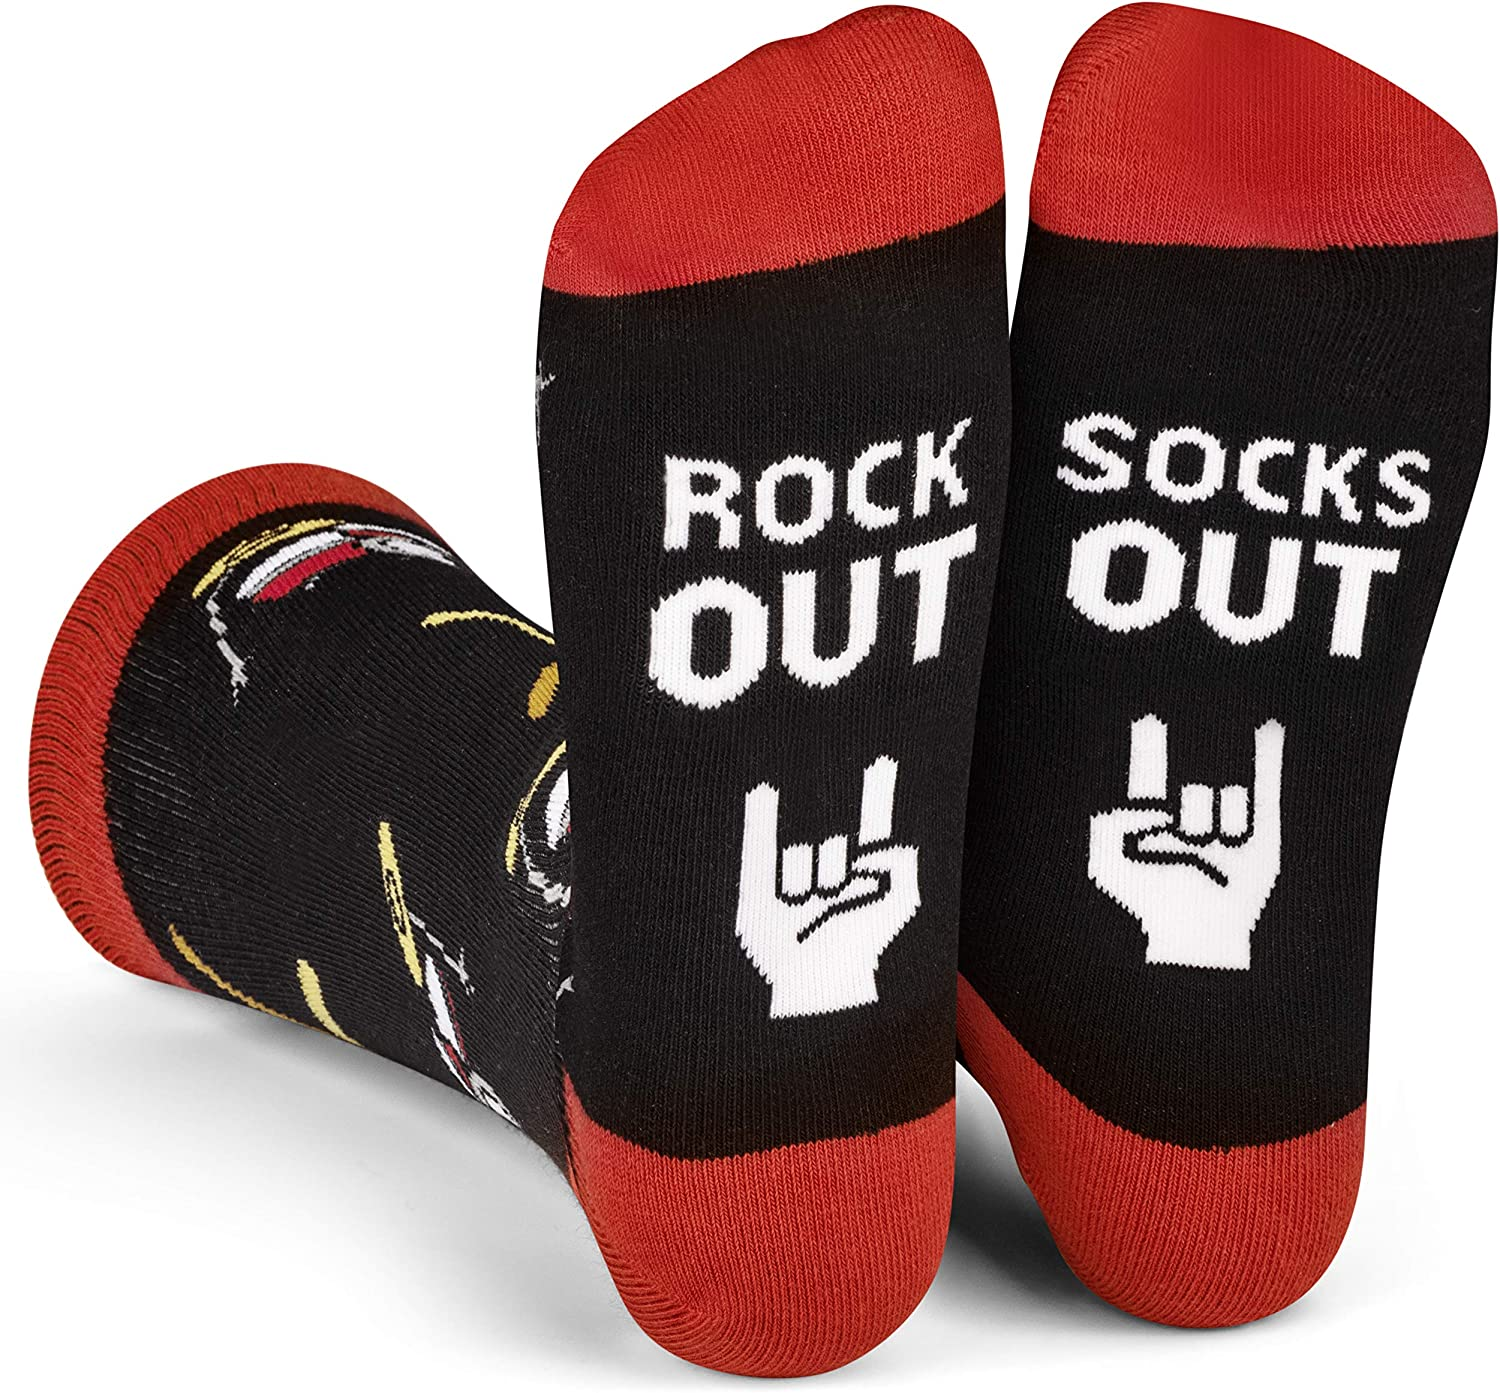 Lavley Rock Out Socks Out Guitar and Drum Socks for Musicians, Guitarists and Drummers